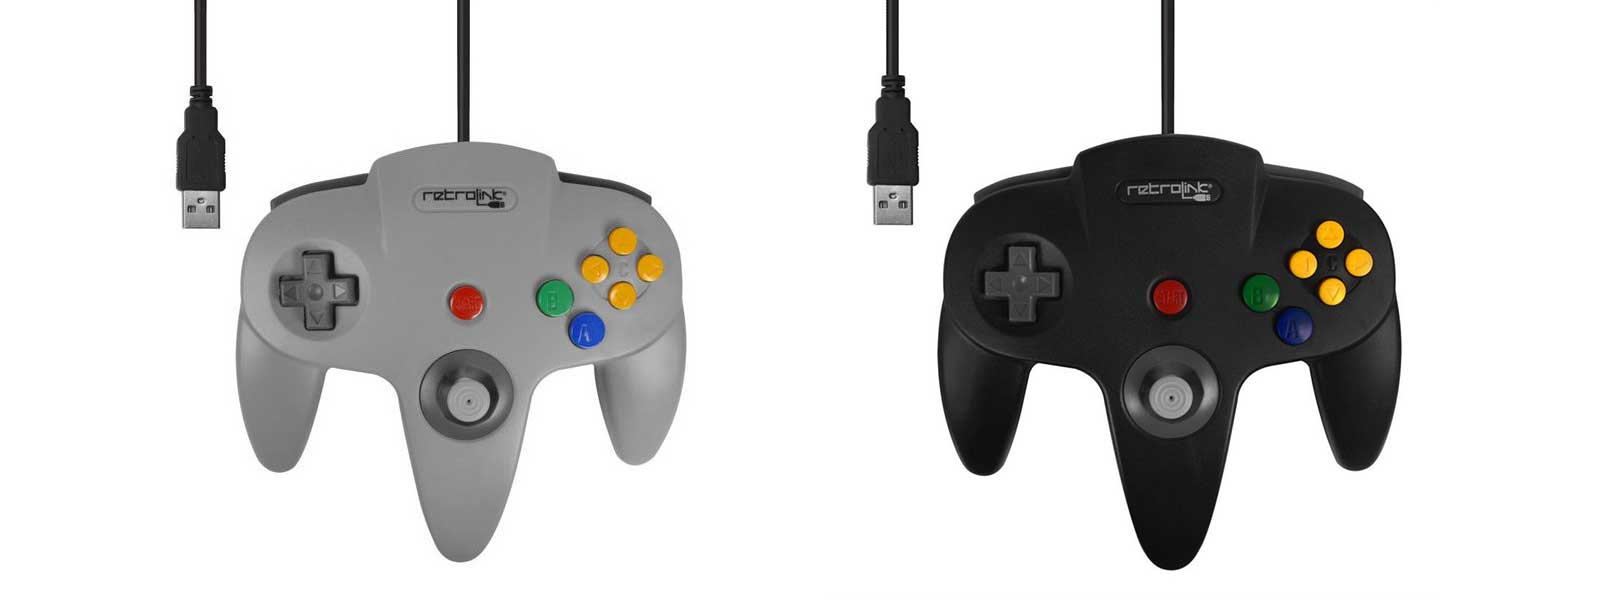 Retrolink Nintendo 64 Classic Review, a Great Wired USB